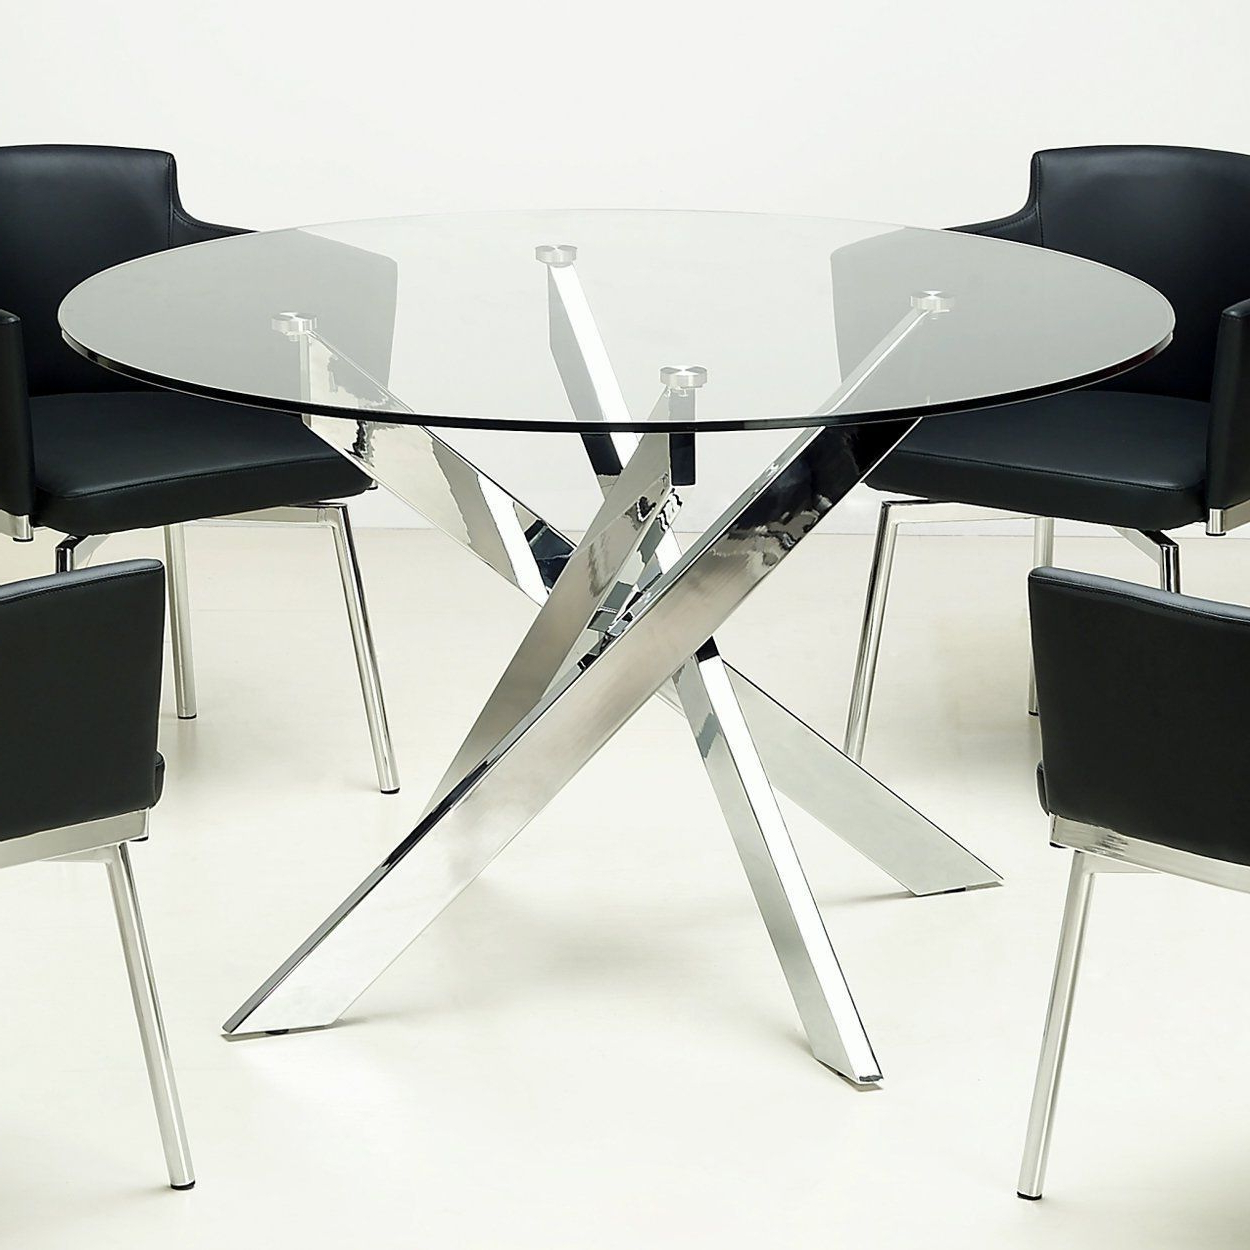 Recent Modern Round Glass Top Dining Tables Intended For Online Shopping – Bedding, Furniture, Electronics, Jewelry (View 10 of 25)